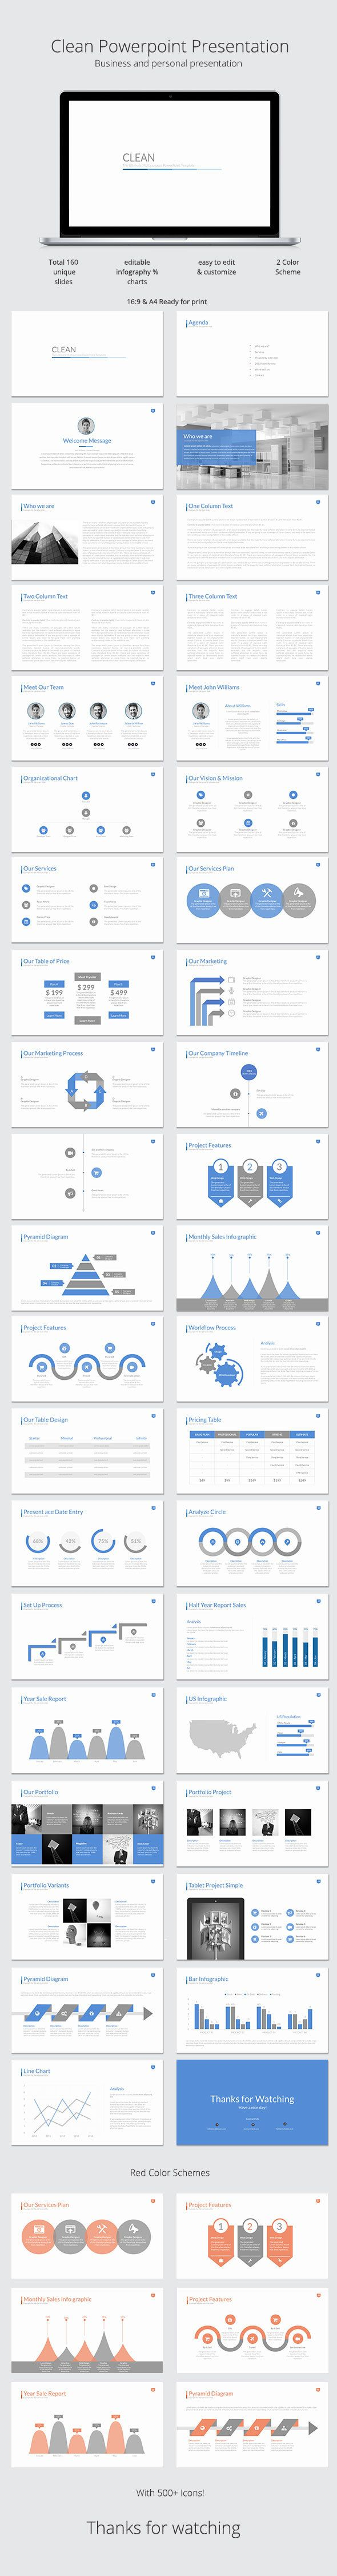 Usdgus  Picturesque  Ideas About Powerpoint Presentations On Pinterest With Fascinating Clean Powerpoint Template With Breathtaking Install Microsoft Powerpoint  Also Powerpoint Animated Text In Addition Powerpoint Software For Windows  And Free Microsoft Powerpoint Themes Download As Well As Last Powerpoint Slide Additionally Free Animated Powerpoint Templates  From Pinterestcom With Usdgus  Fascinating  Ideas About Powerpoint Presentations On Pinterest With Breathtaking Clean Powerpoint Template And Picturesque Install Microsoft Powerpoint  Also Powerpoint Animated Text In Addition Powerpoint Software For Windows  From Pinterestcom